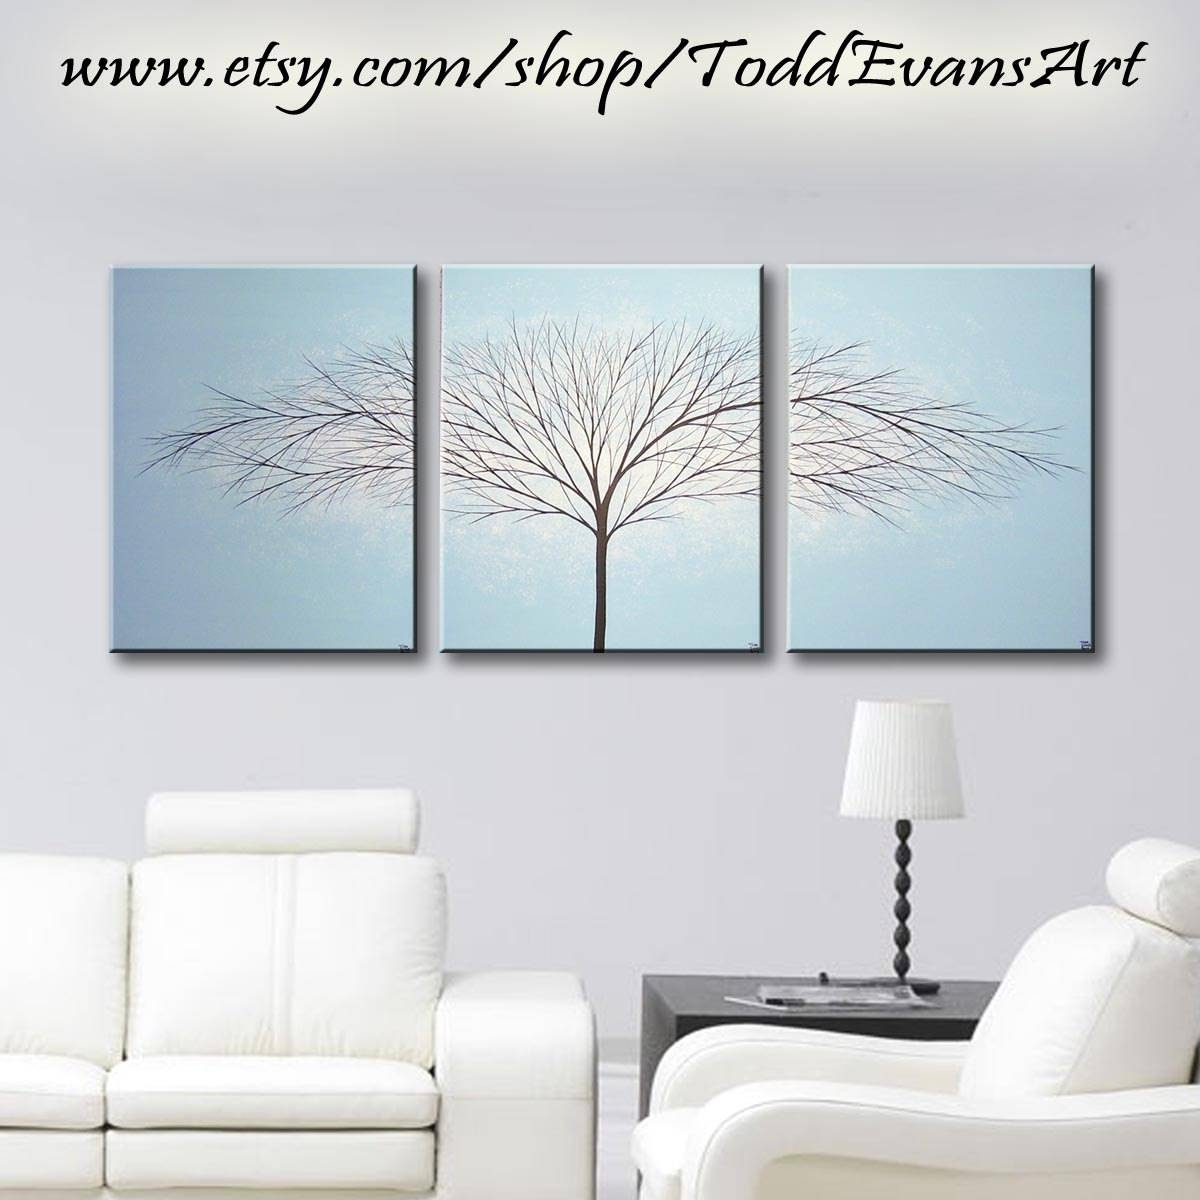 Tree Painting 3 Piece Wall Art Large Canvas Art Painting Throughout Most Recently Released 3 Piece Wall Art Sets (View 16 of 25)